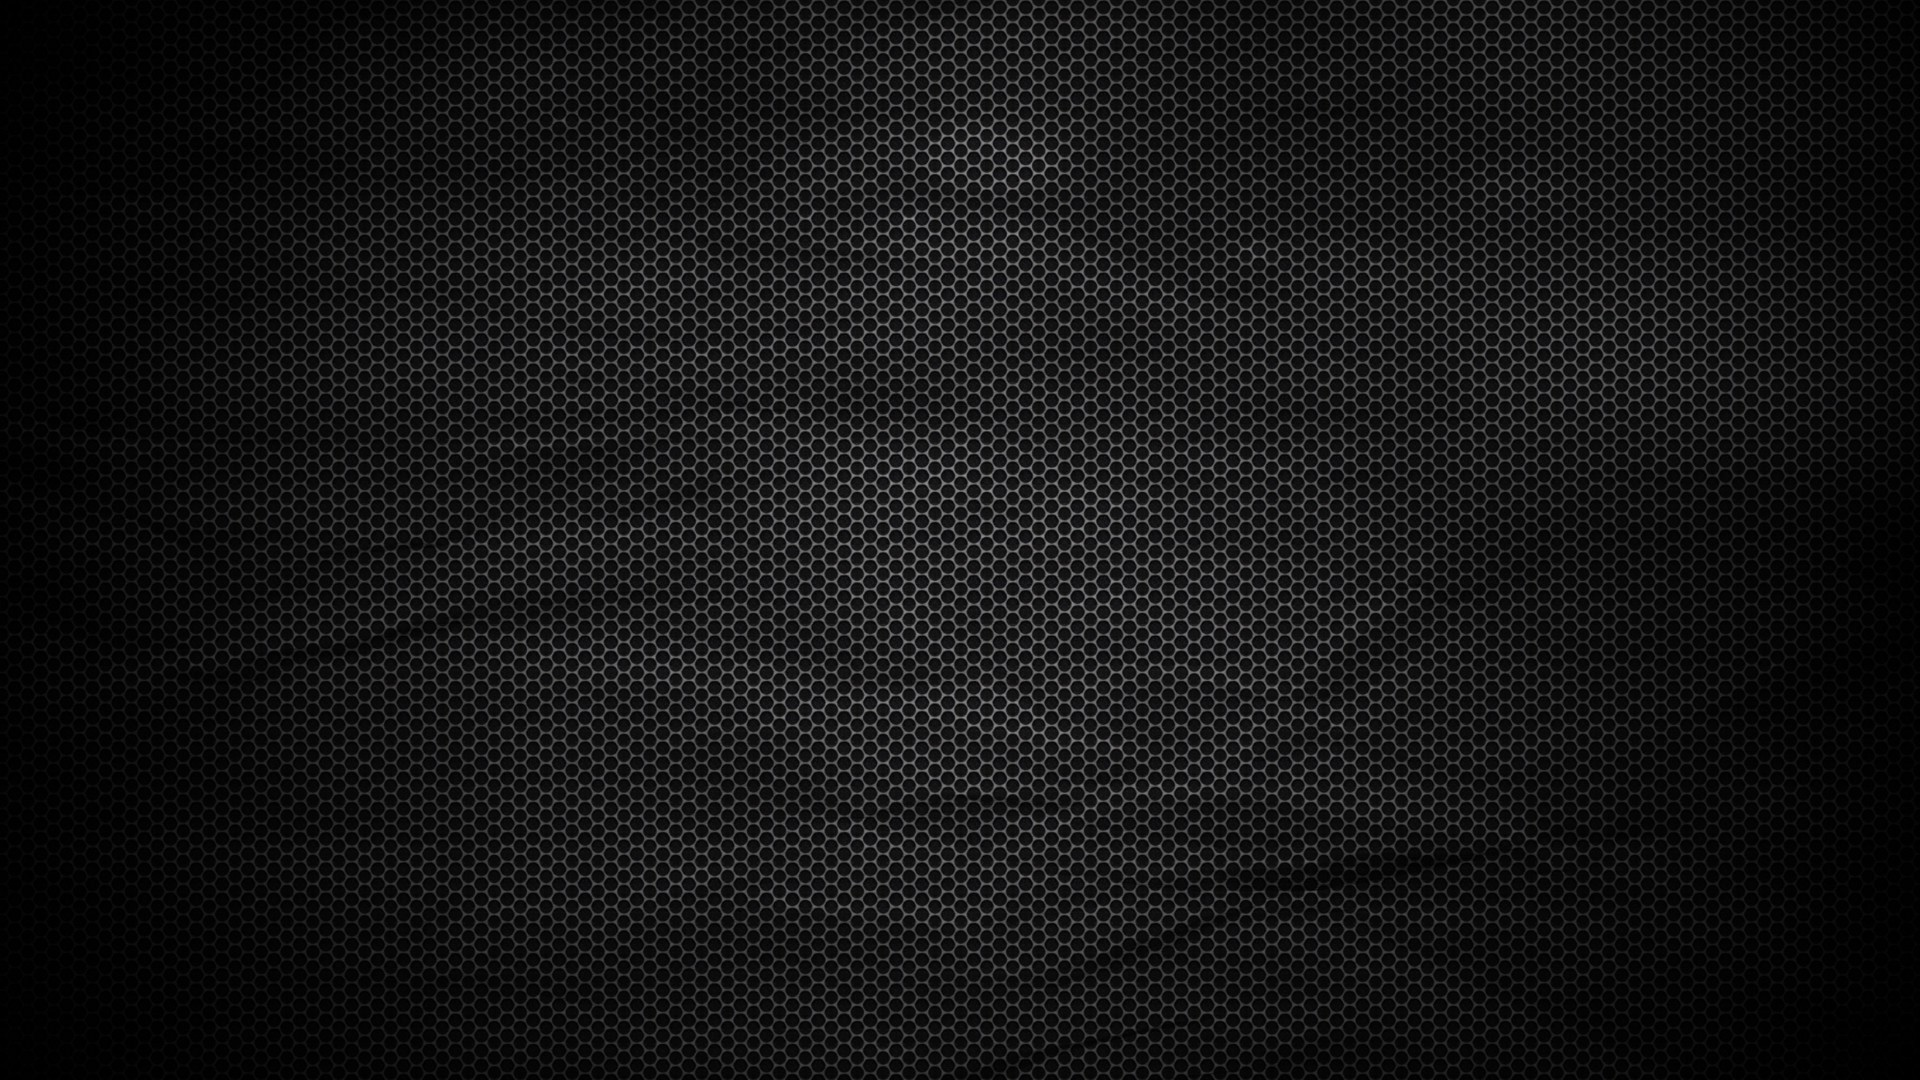 V.65: HD Images of Honeycomb, Ultra HD 4K Honeycomb Wallpapers